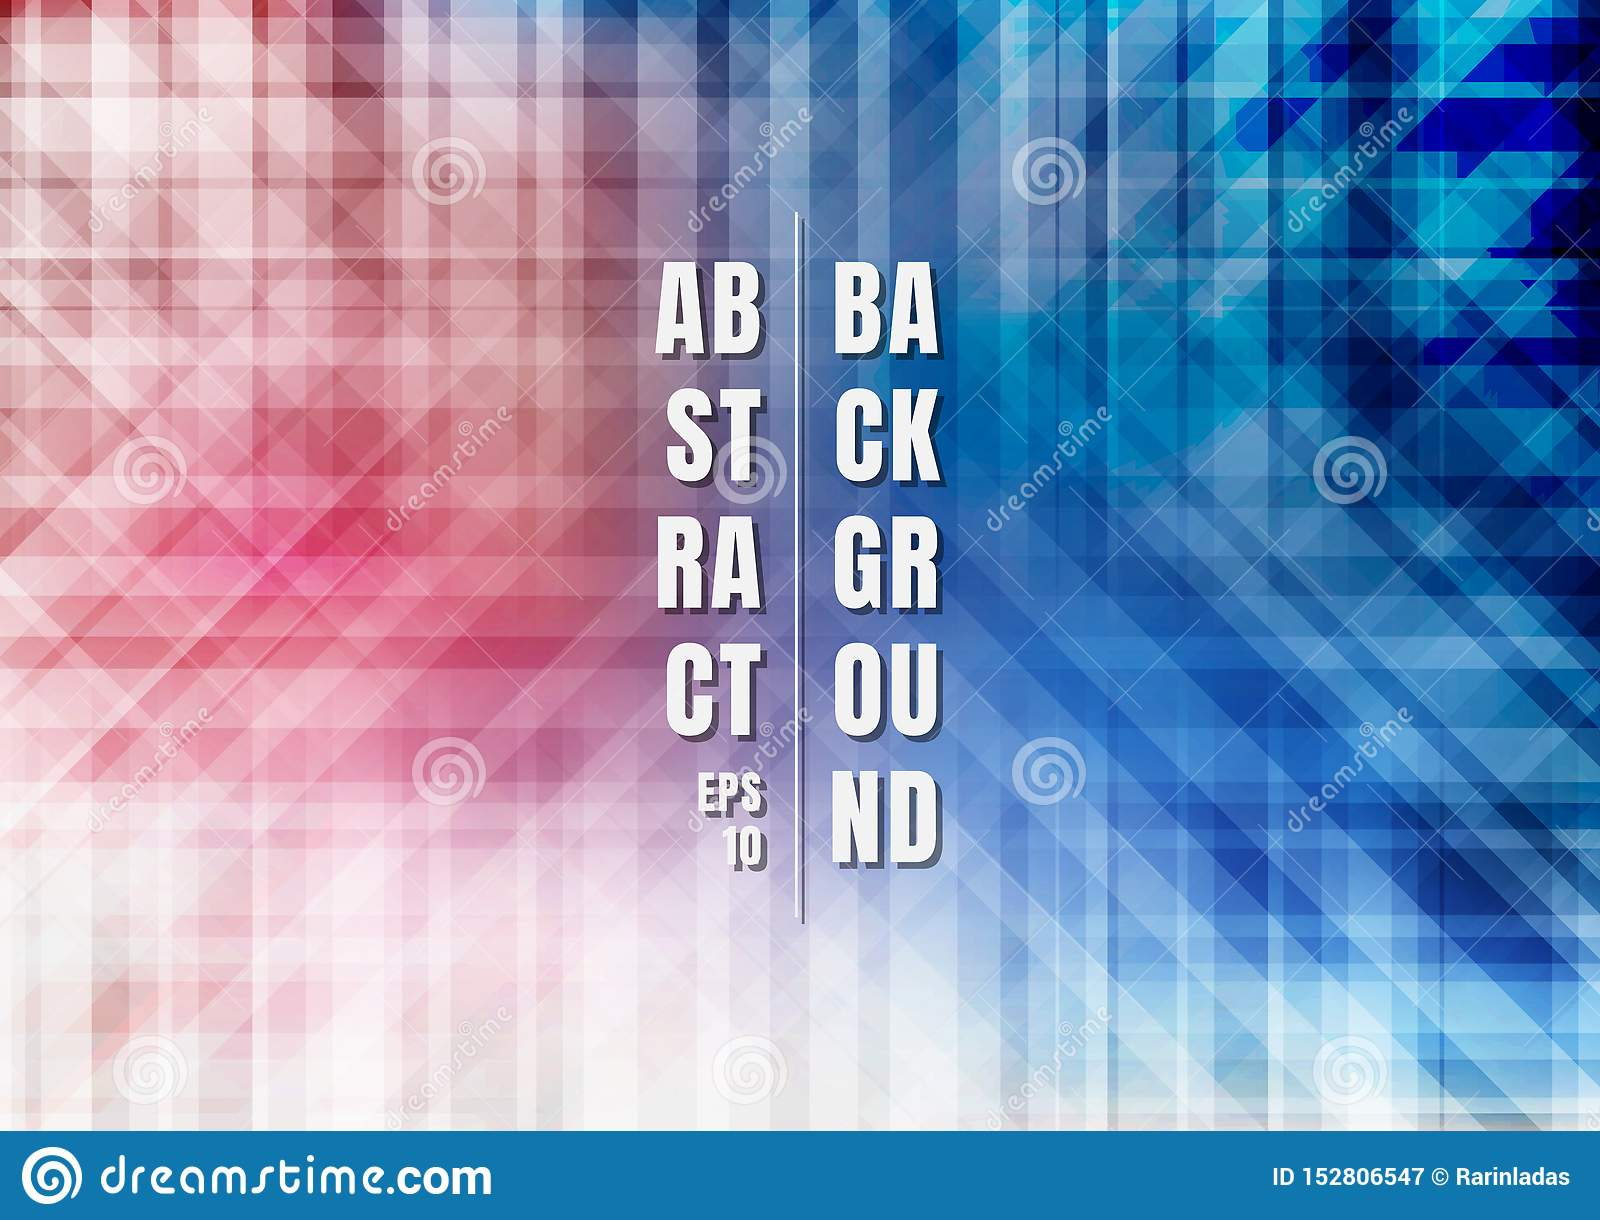 Abstract striped geometric colorful blue and red overlapping background technology style